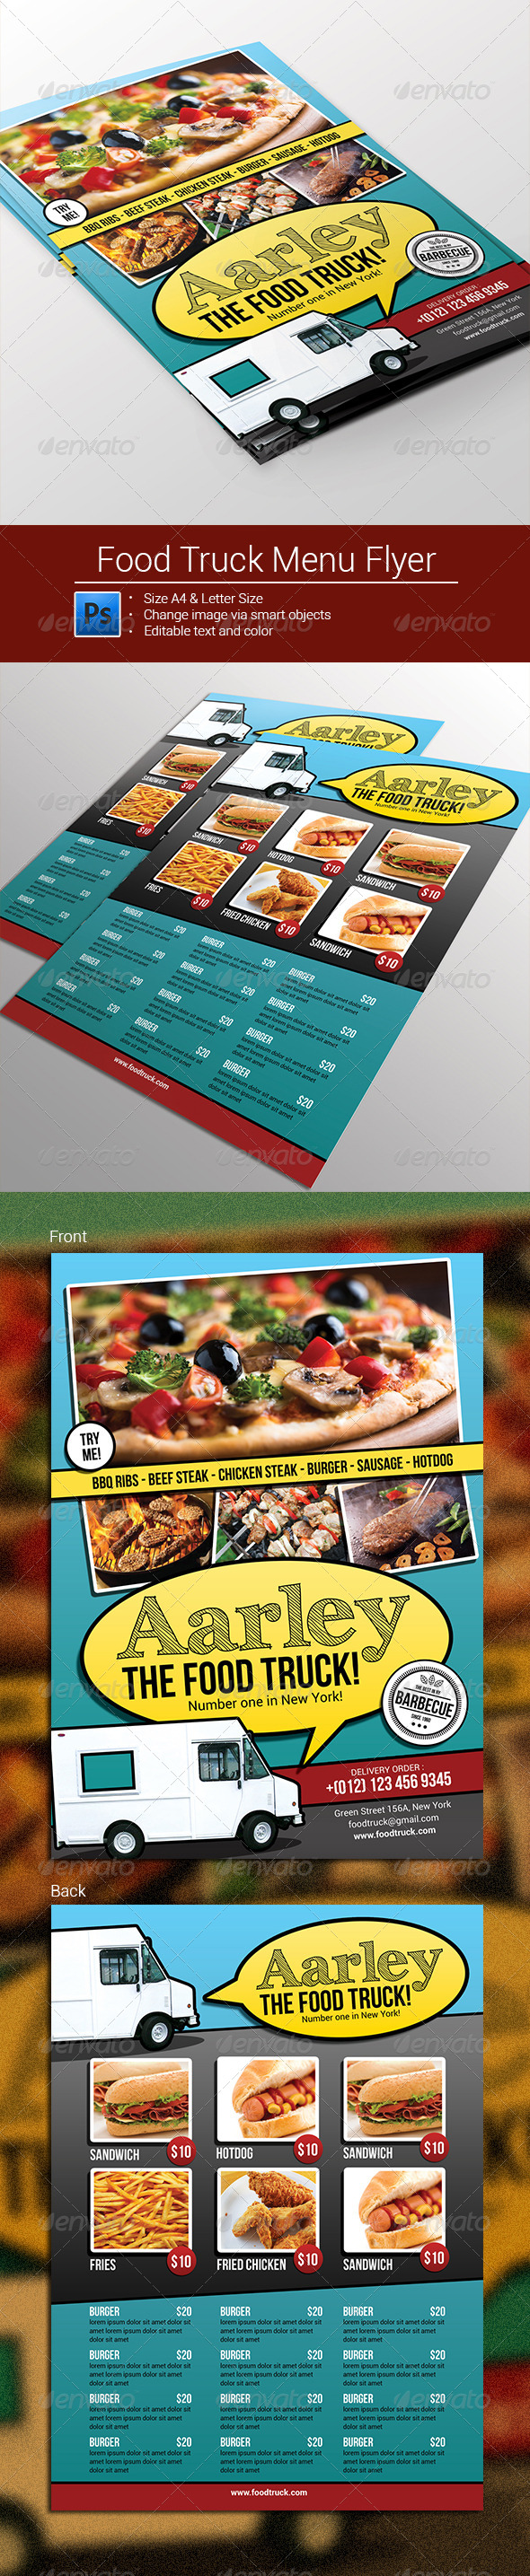 GraphicRiver Food Truck Menu Flyer 8399366